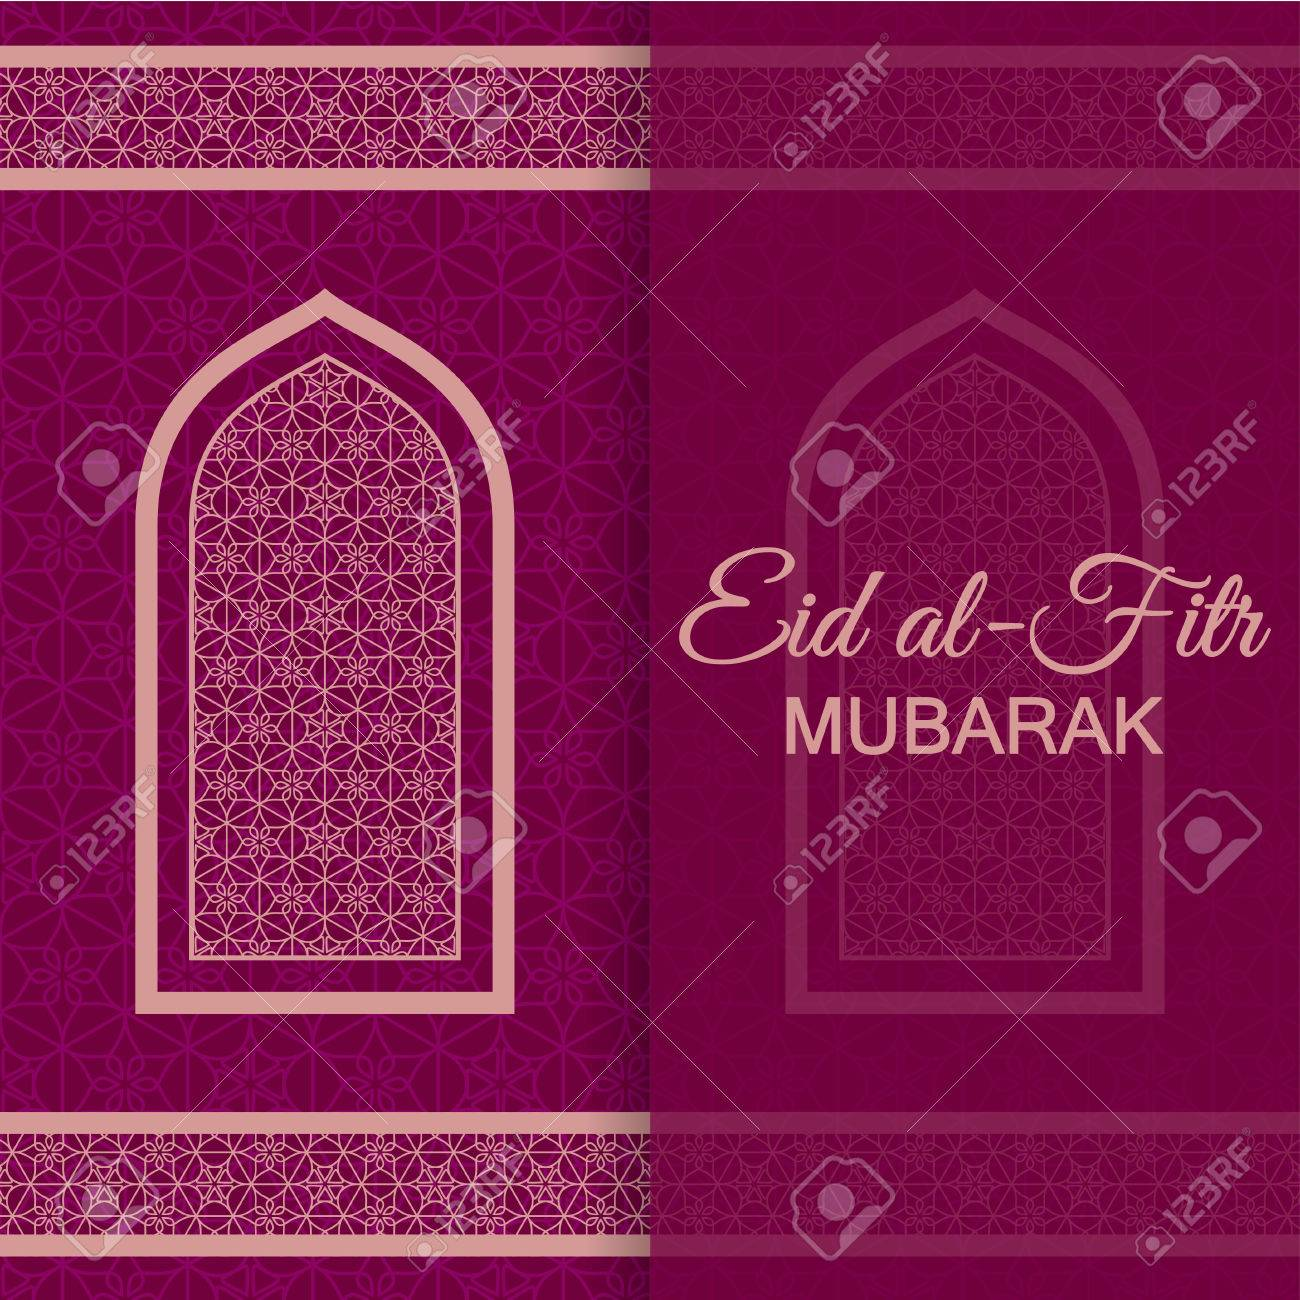 Download Window eid al-fitr decorations - 58740499-eid-al-fitr-background-islamic-arabic-window-greeting-card-vector-illustration-  Perfect Image Reference_37682 .jpg